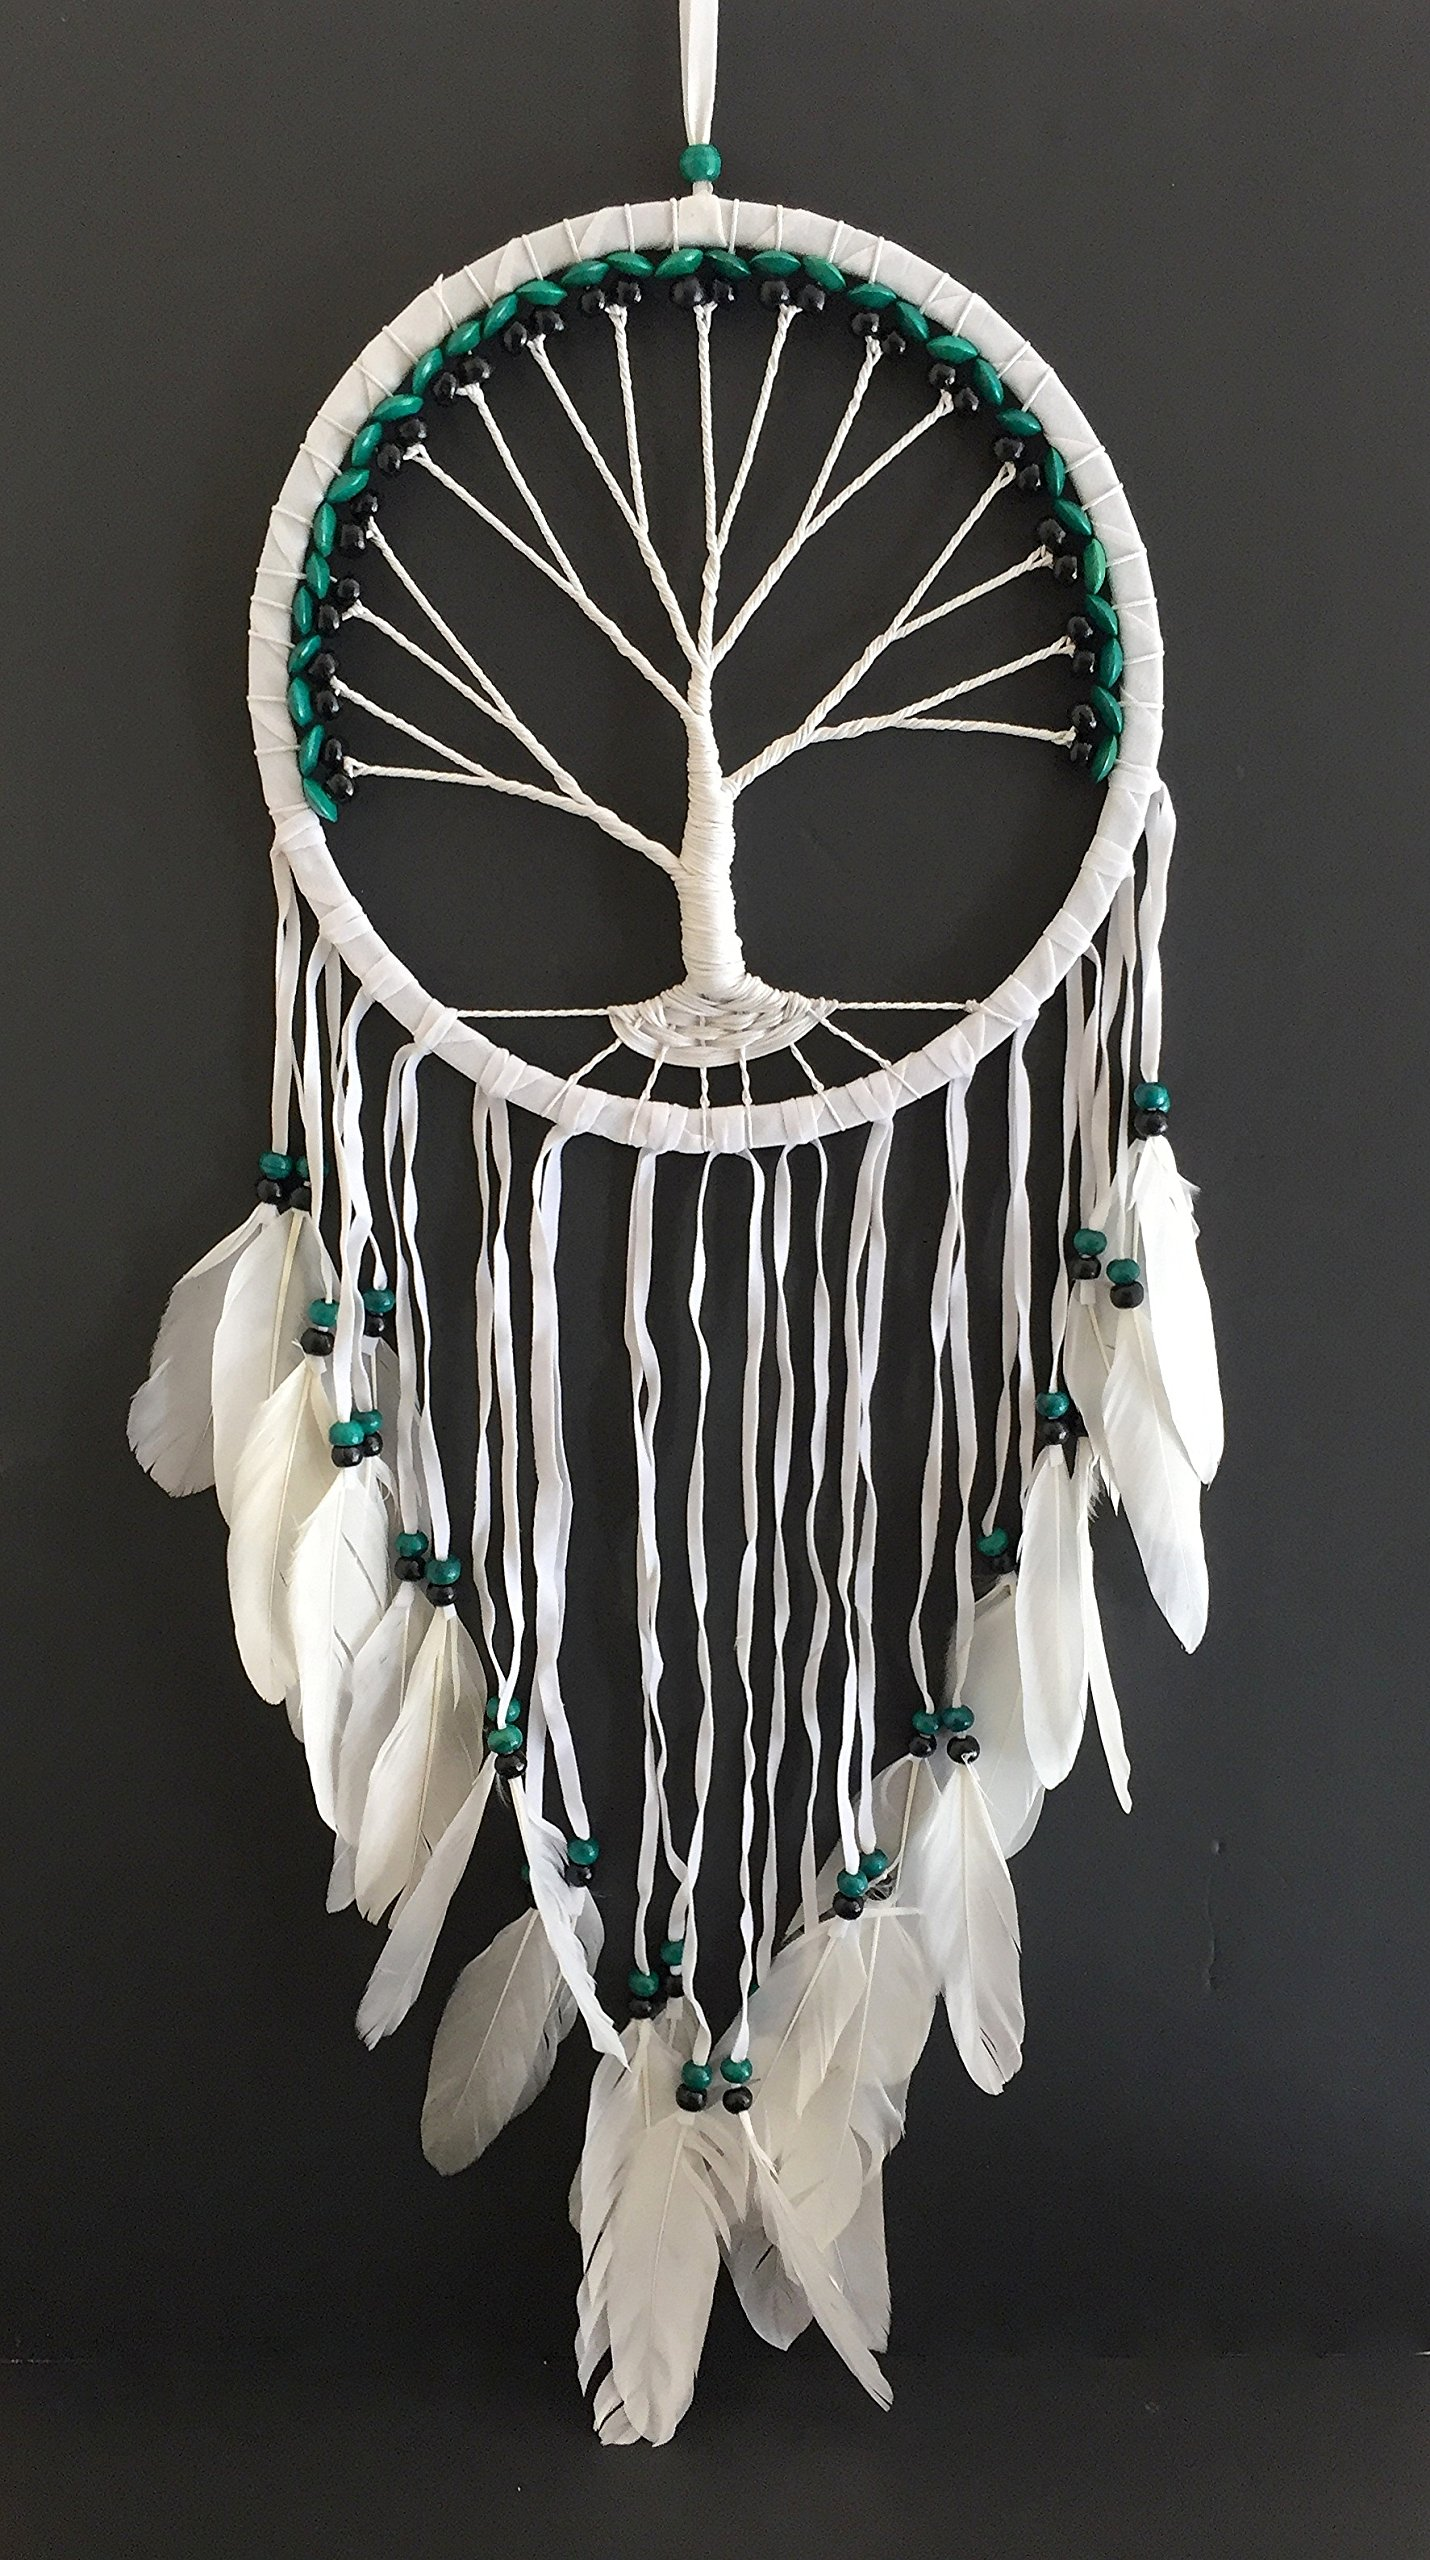 OMA Dream Catcher - TREE OF LIFE White Suede Dreamcatcher HAND CRAFTED With REAL Feathers & Wood Beads - LARGE SIZE - 36'' Long x 11'' Diameter BRAND (Green)